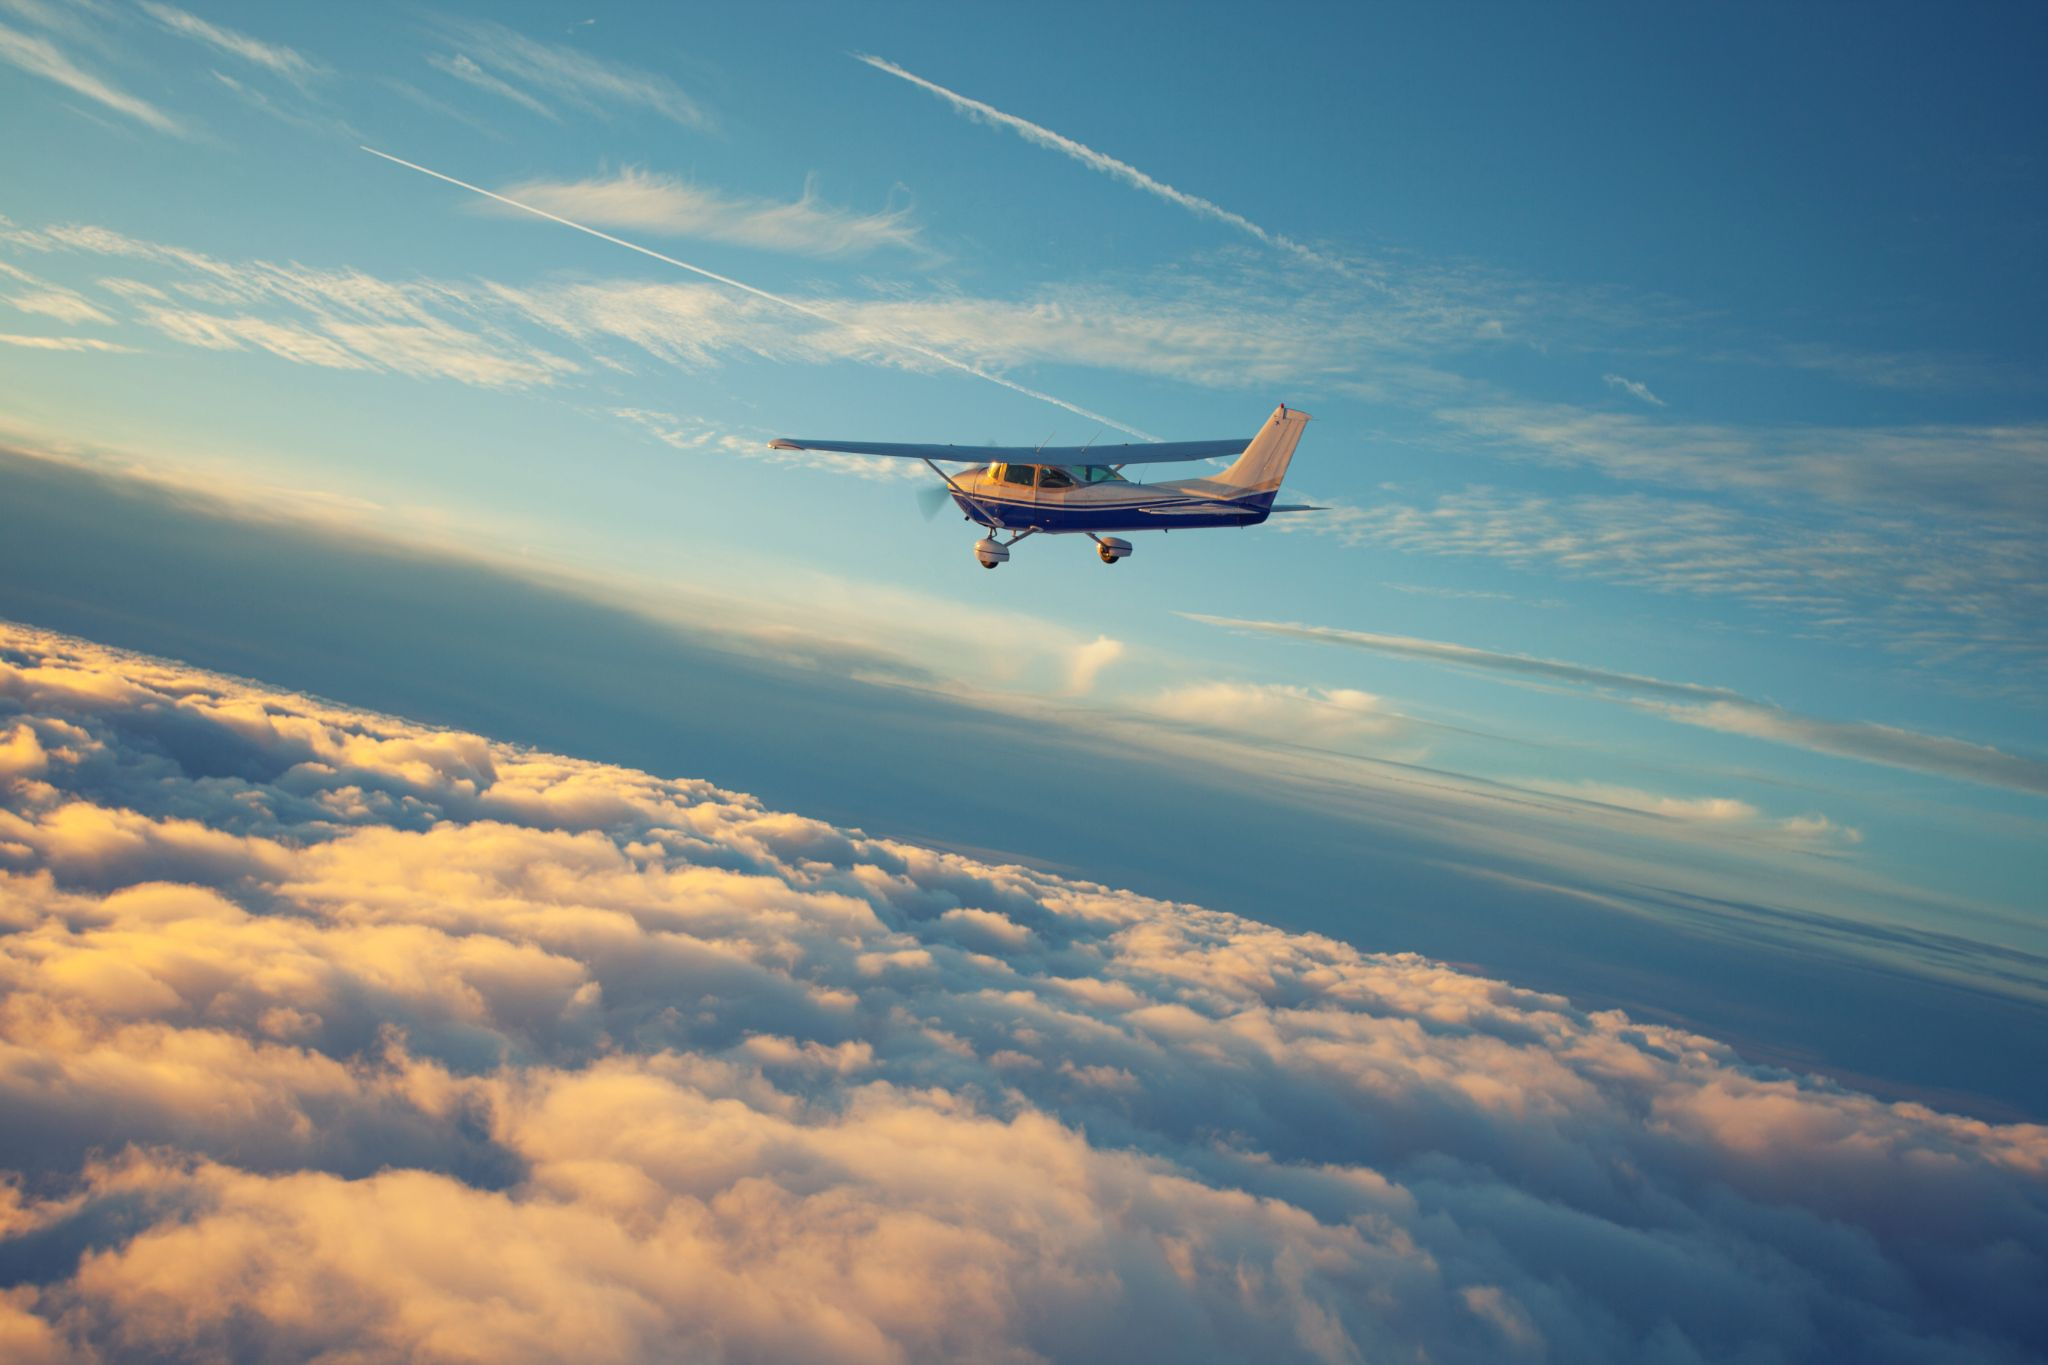 single engine airplane flying in the sunset